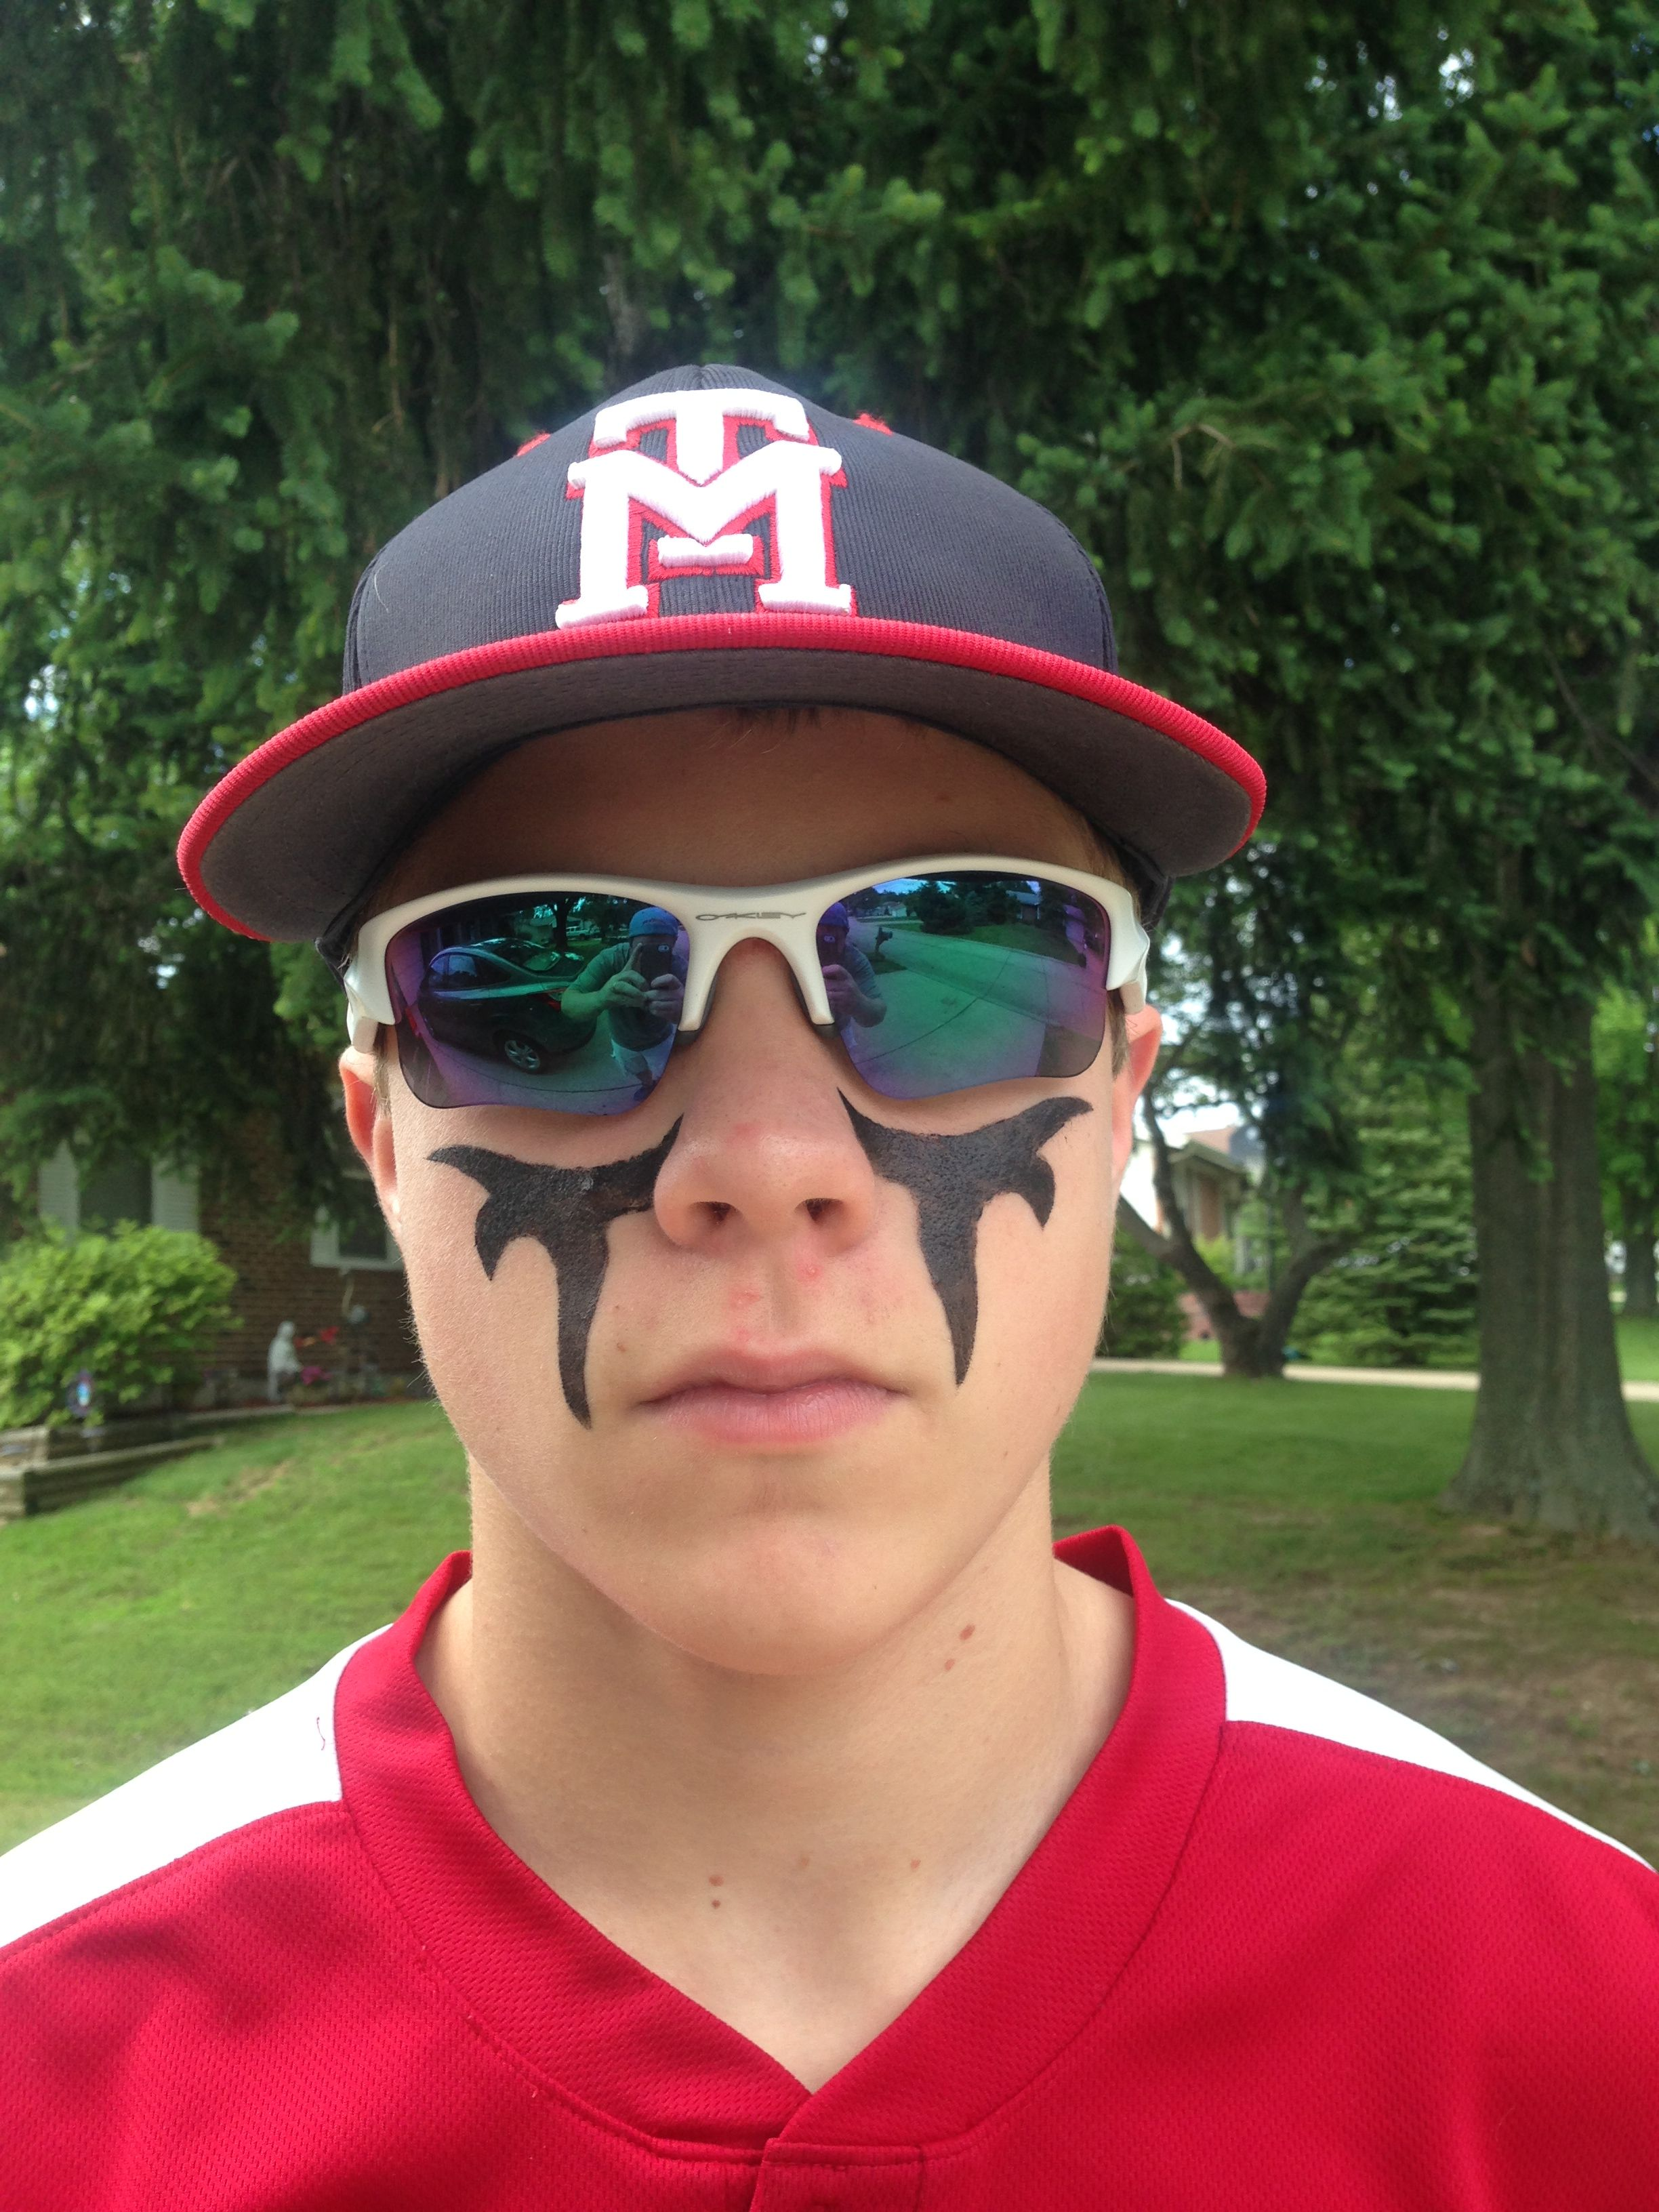 eyeblack design and stencils